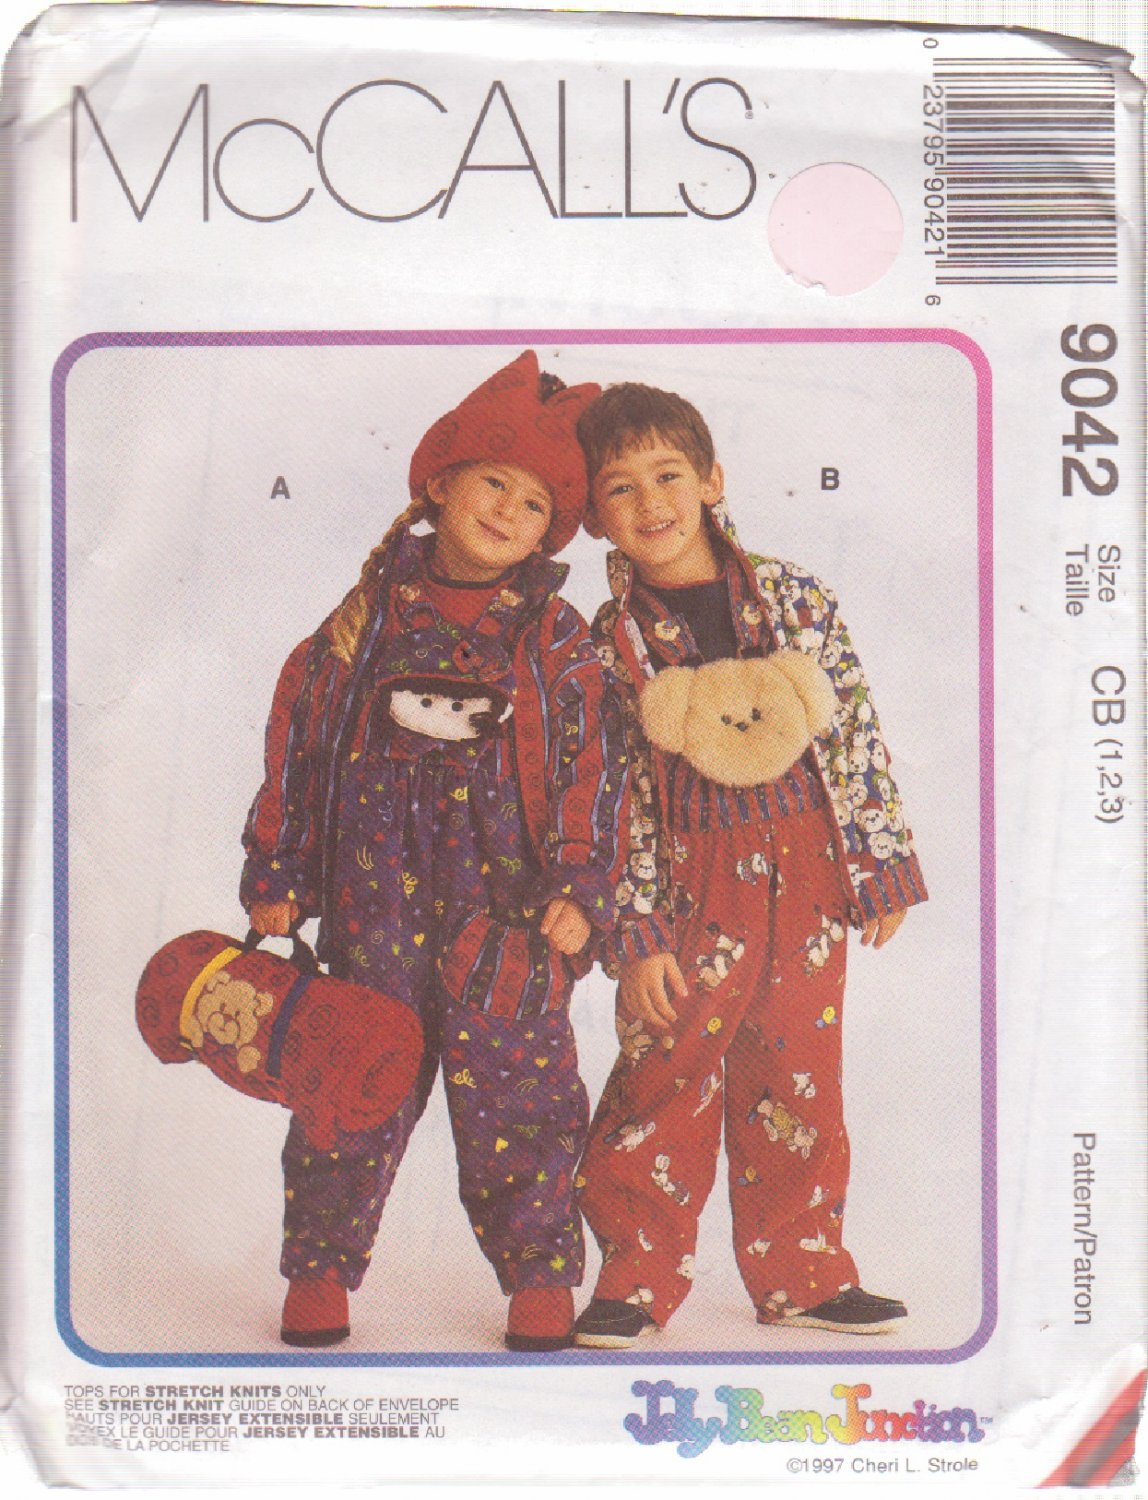 McCALL'S PATTERN 9042 CHILD'S JACKET, OVERALLS, TOP, HAT, BLANKET ROLL SZS 1/2/3